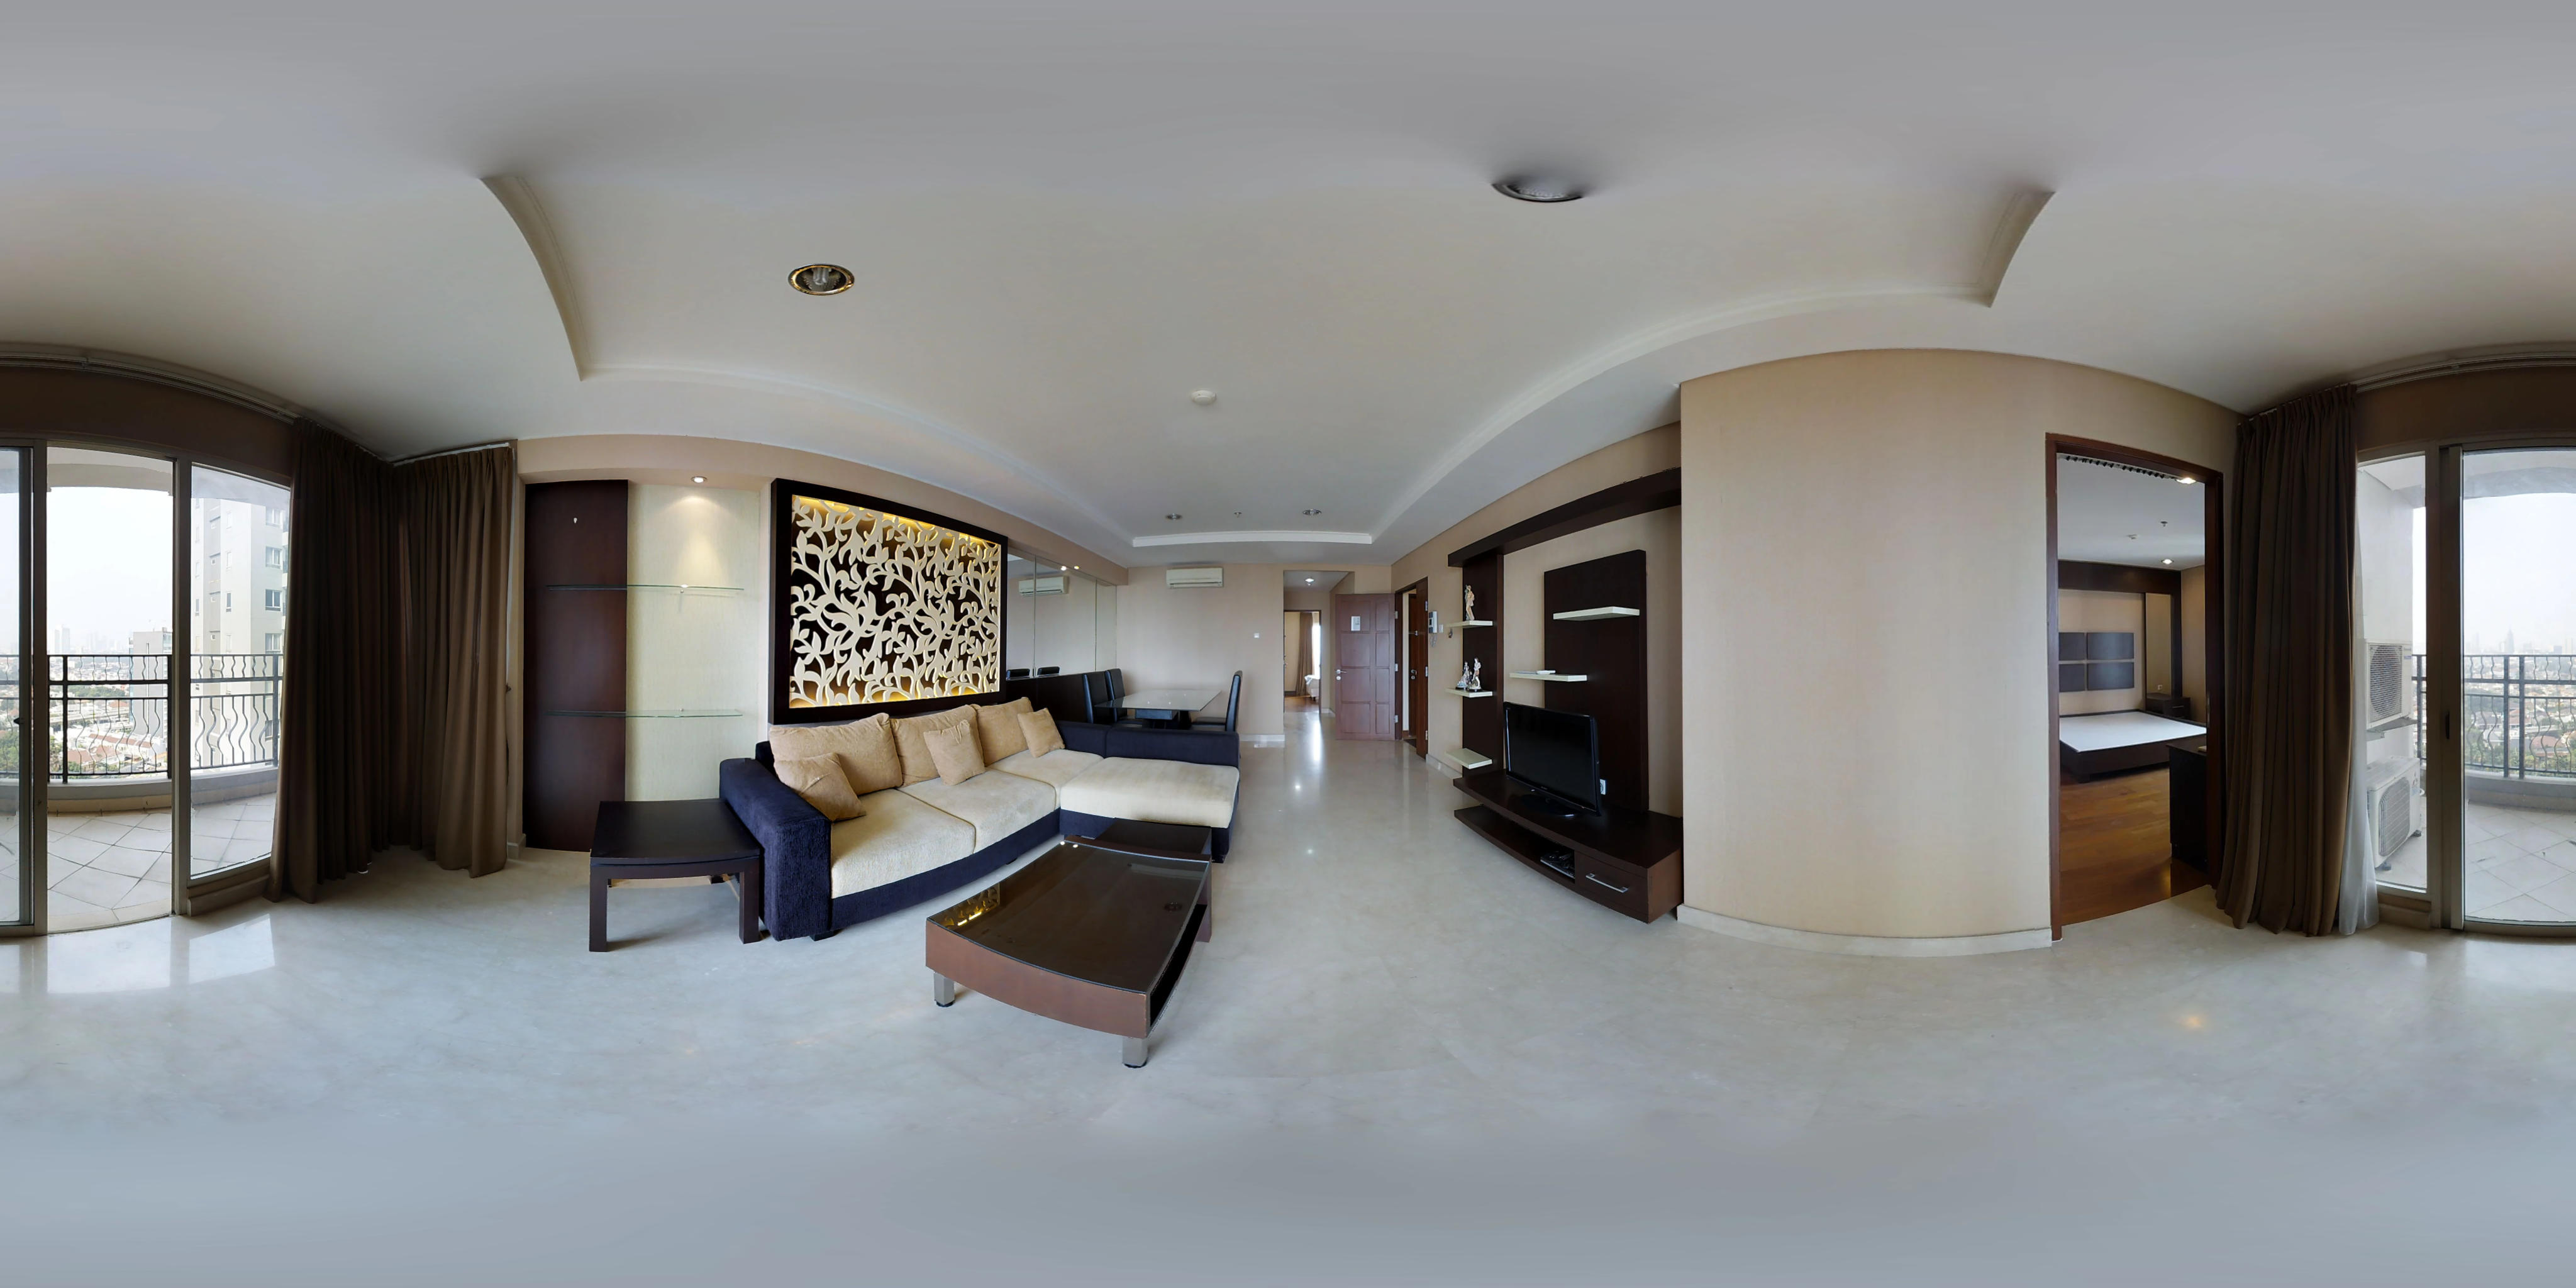 for rent Permata Hijau Residence - Gorgeous unit next to city south jakarta